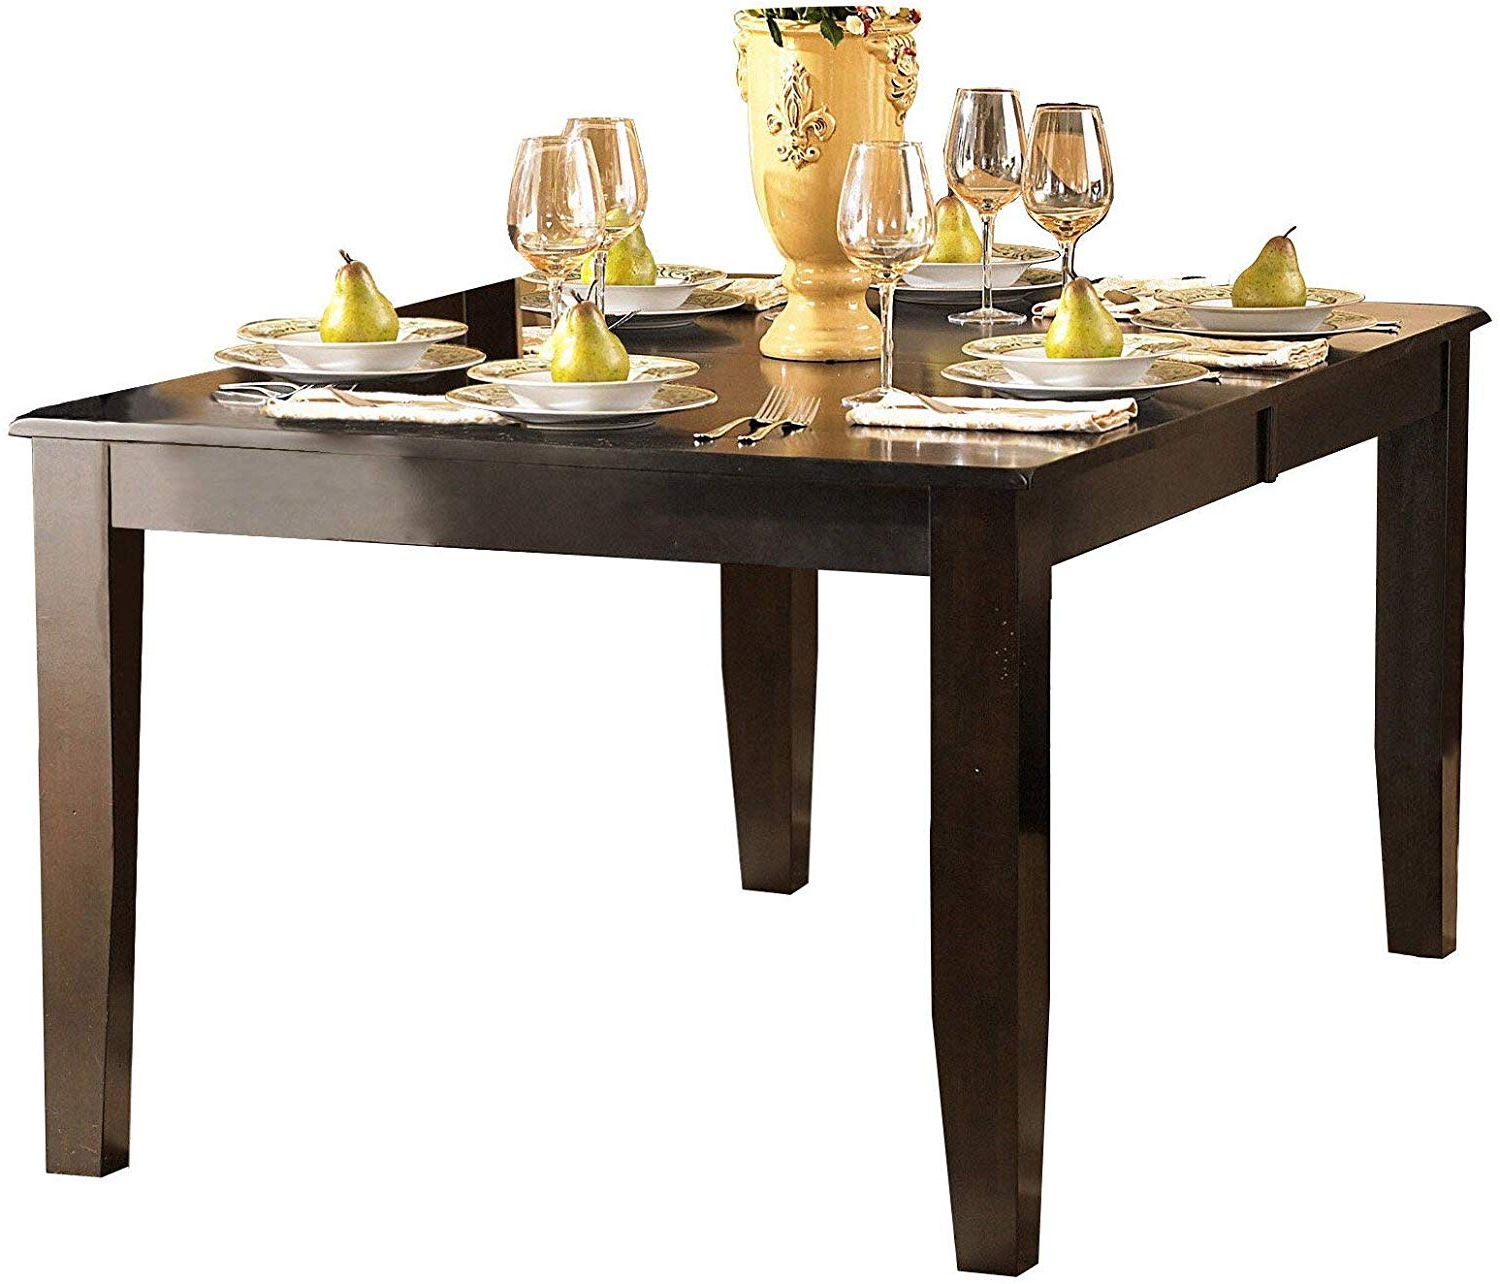 Amazon – Creekmore Casual Modern 8Pc Dining Set Table, 6 Intended For Famous Artefac Contemporary Casual Dining Tables (View 15 of 25)